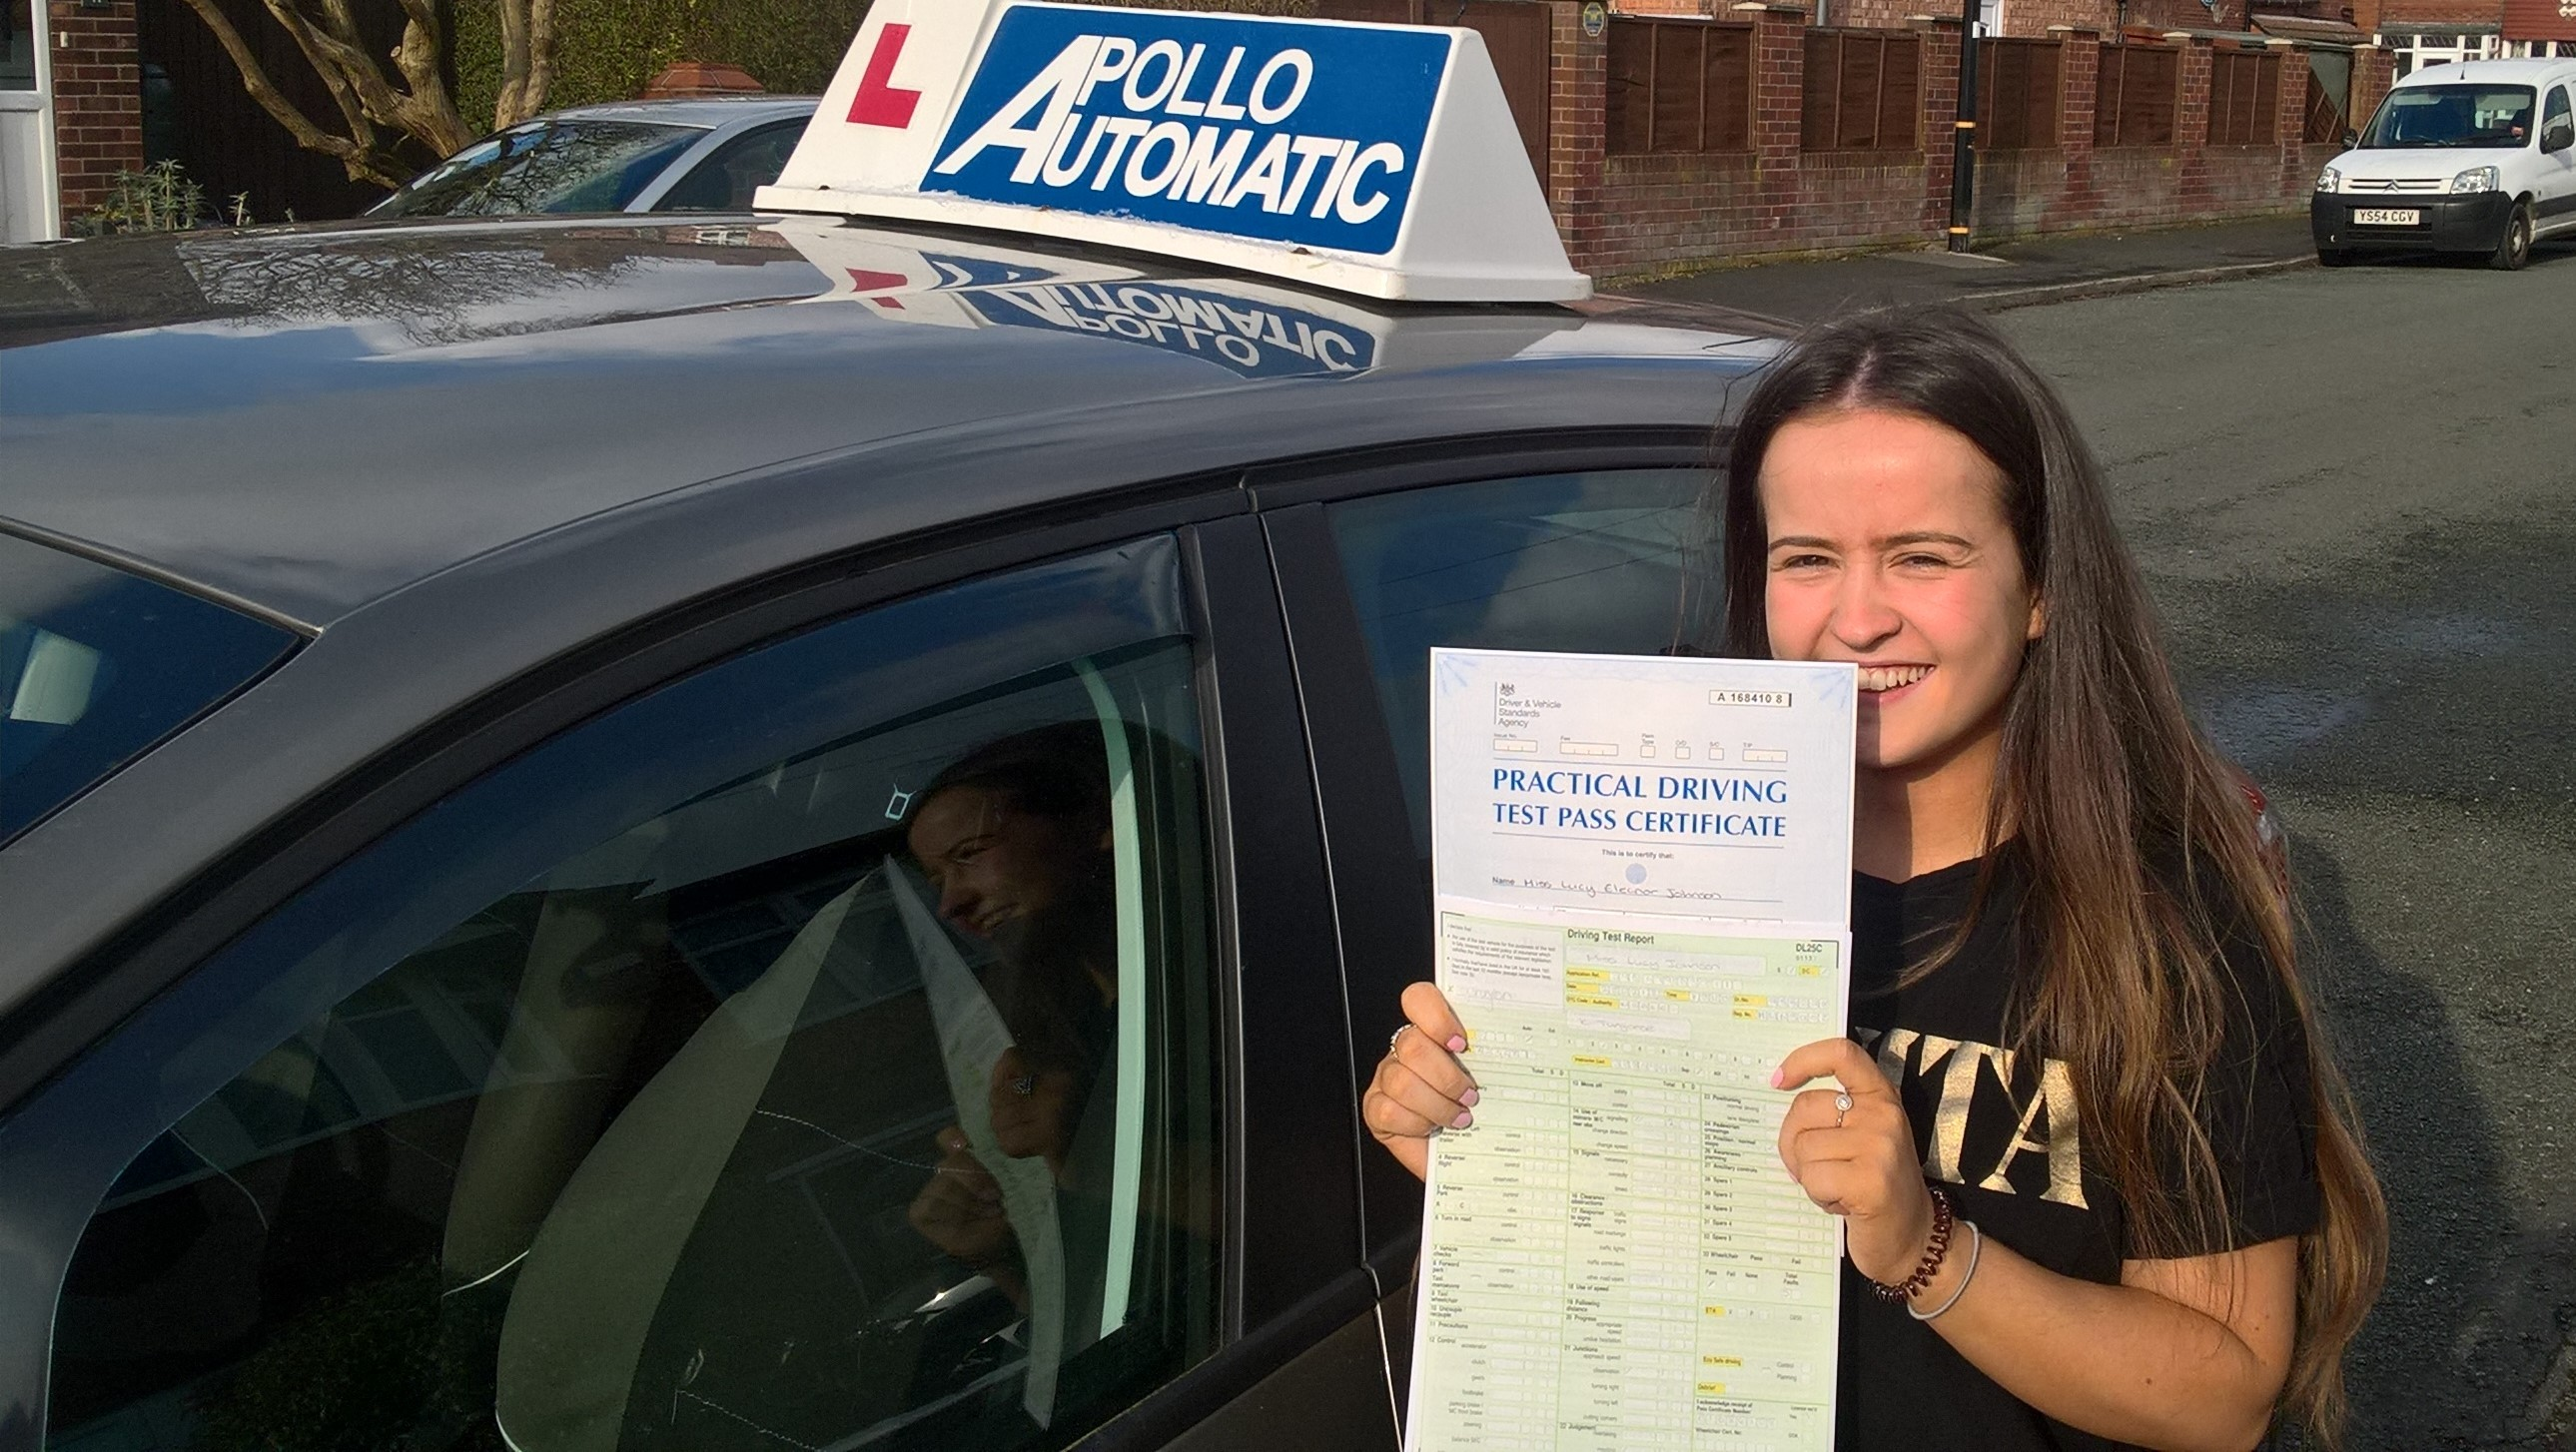 Lucy_Johnson_Automatic_Driving_Lessons_4_U_Altrincham